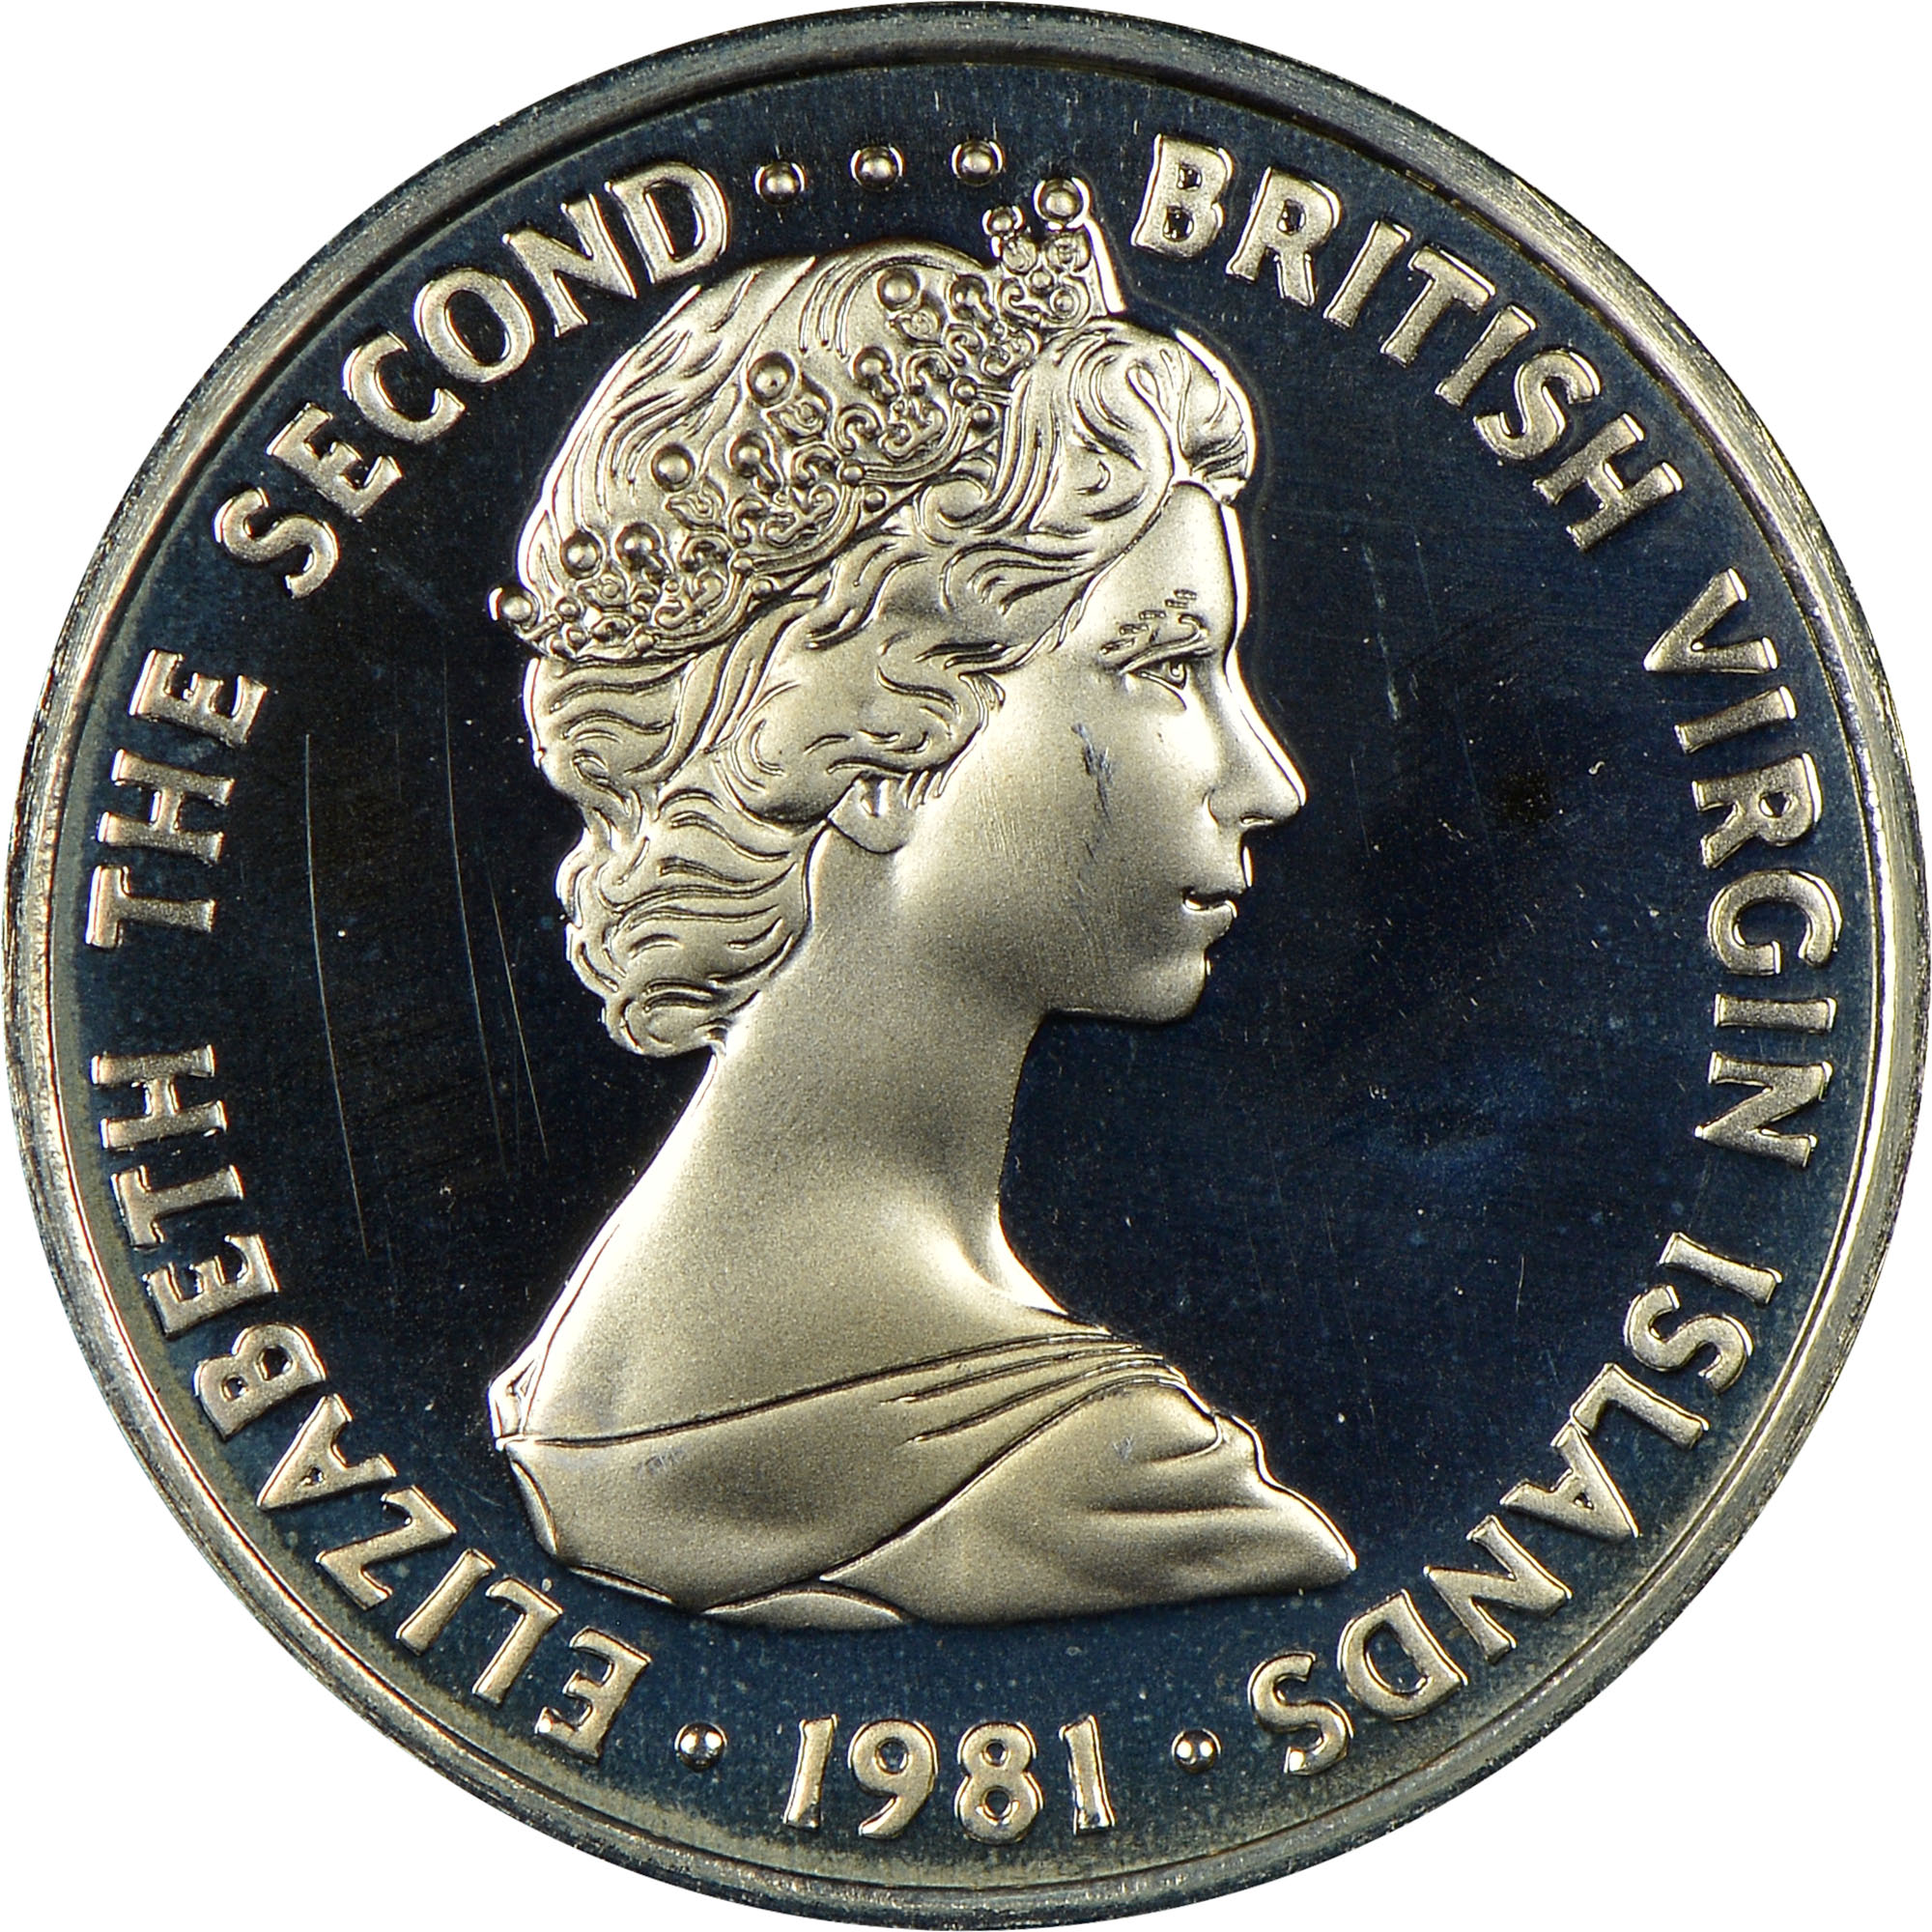 1973-1984 British Virgin Islands 5 Cents obverse